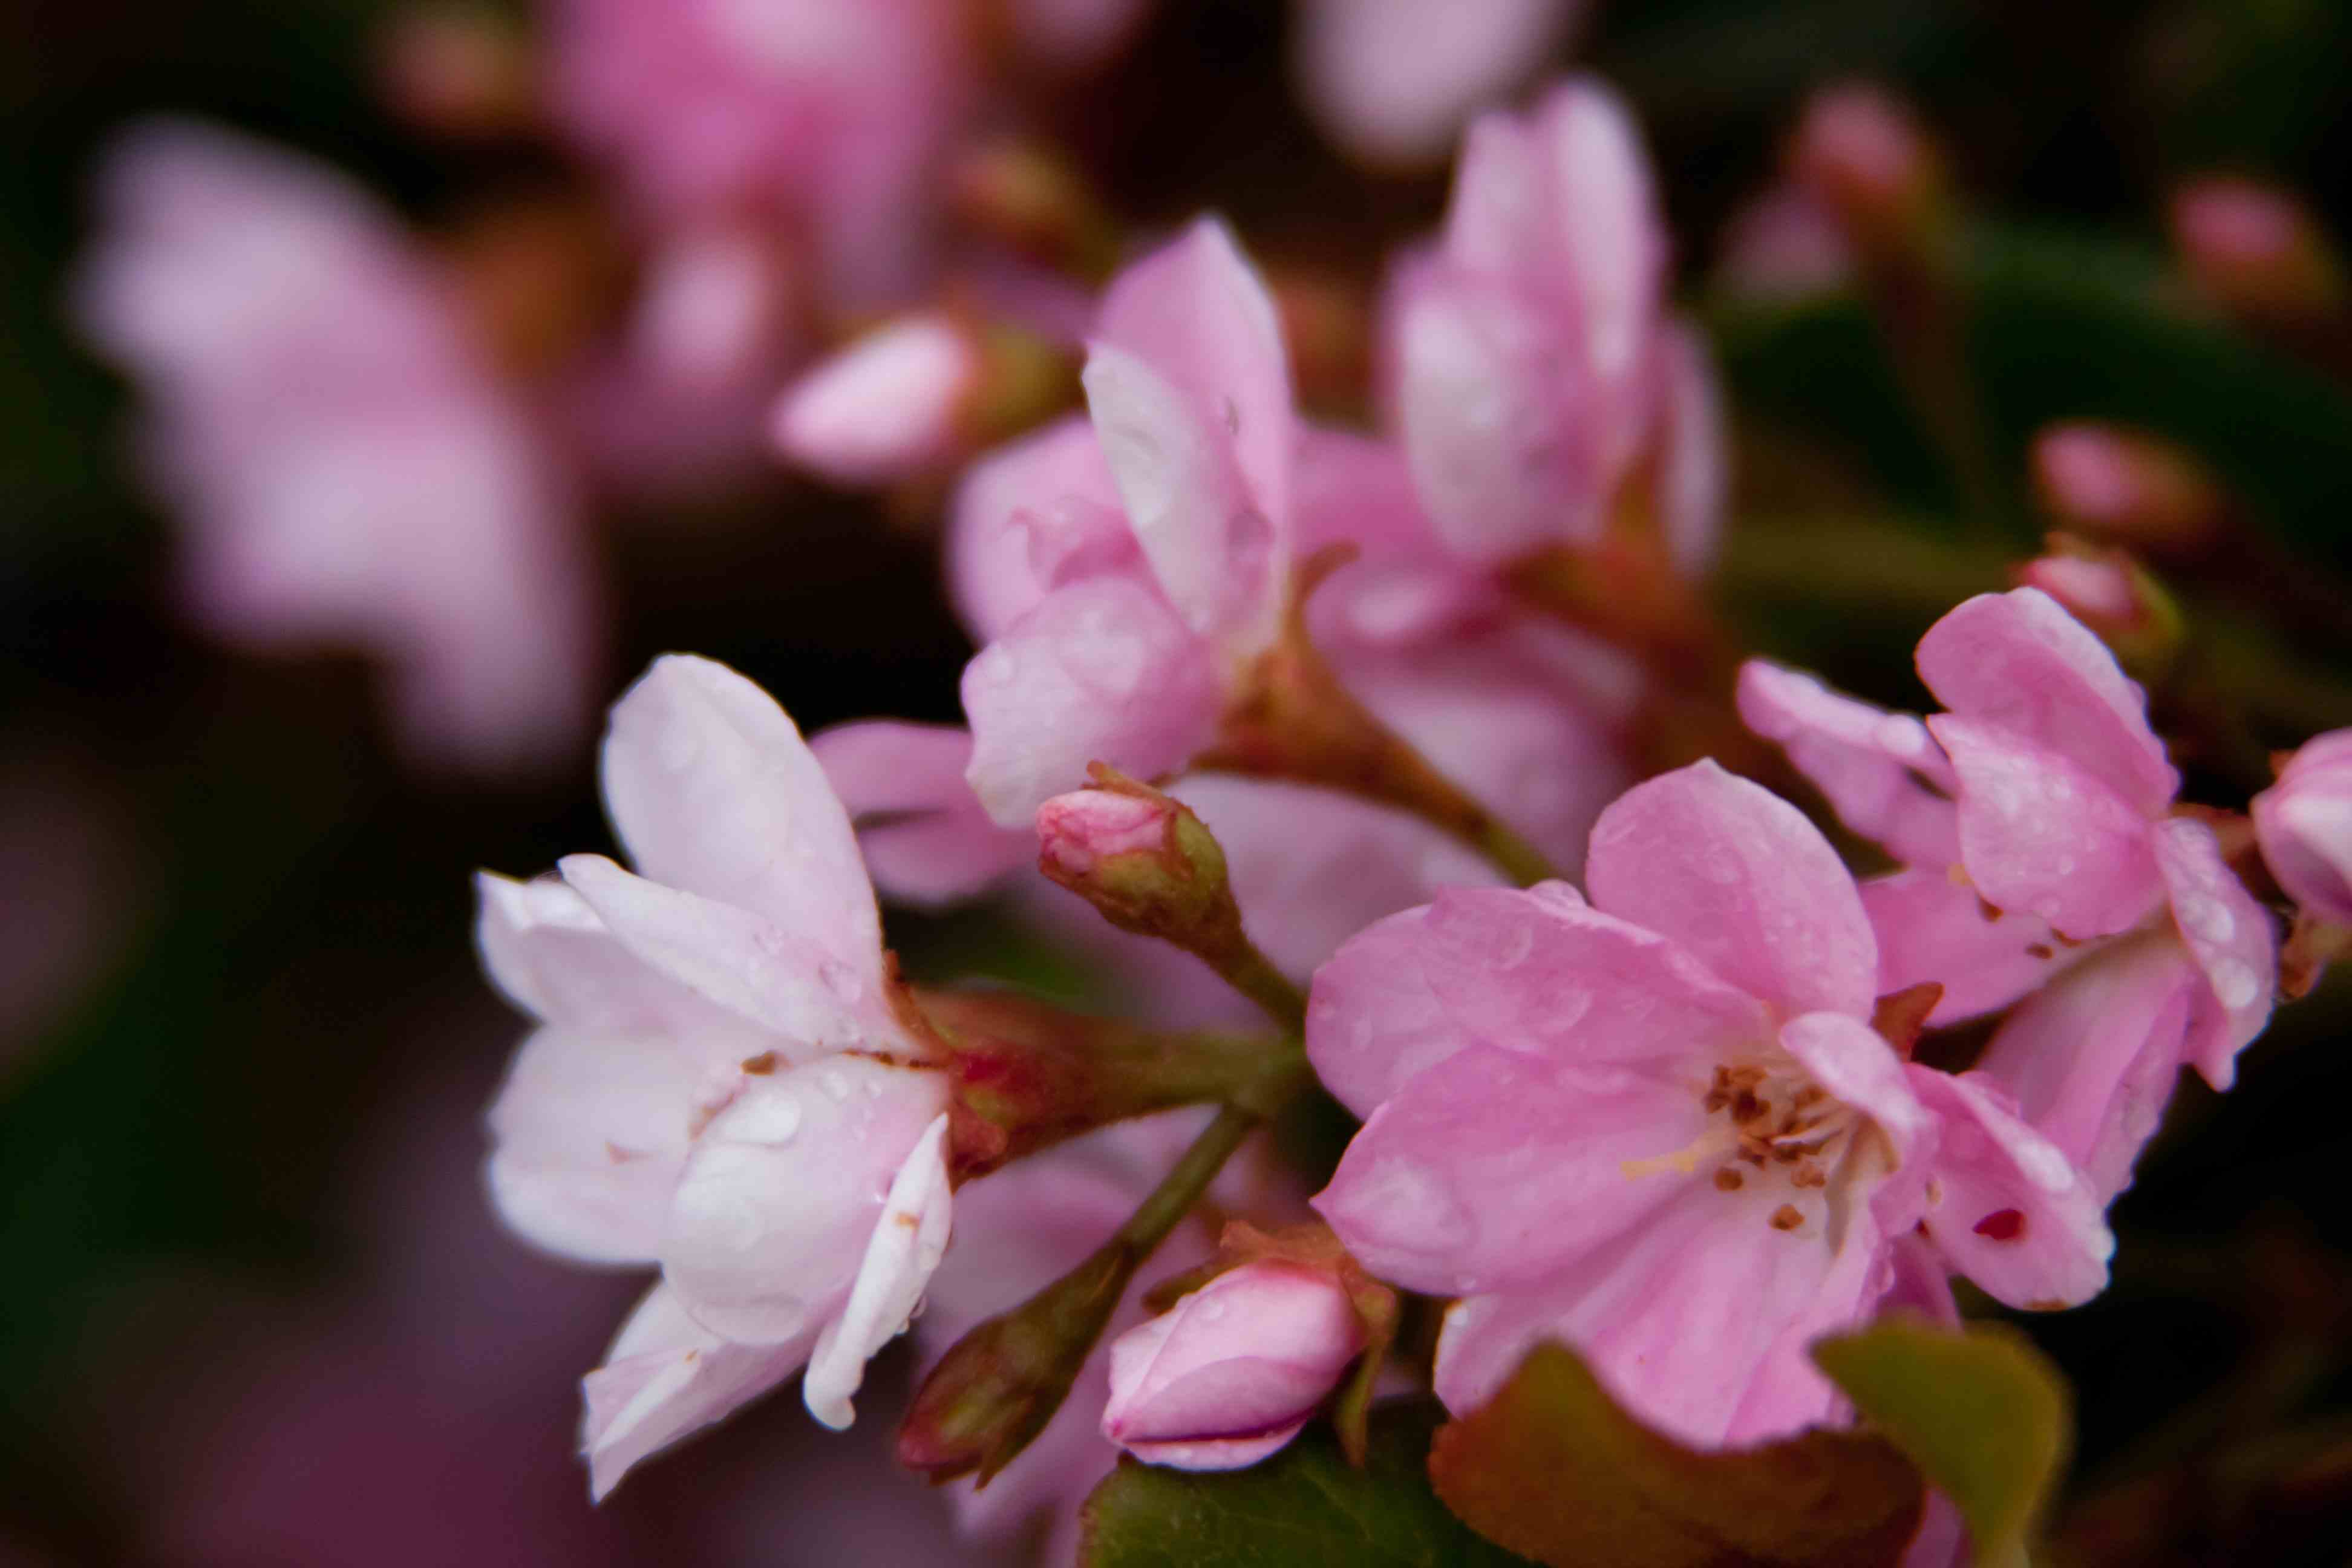 hawthorn online dating An n english language  under the hawthorn tree u  environment for features dating back to famine times history children can learn about life, society, work.